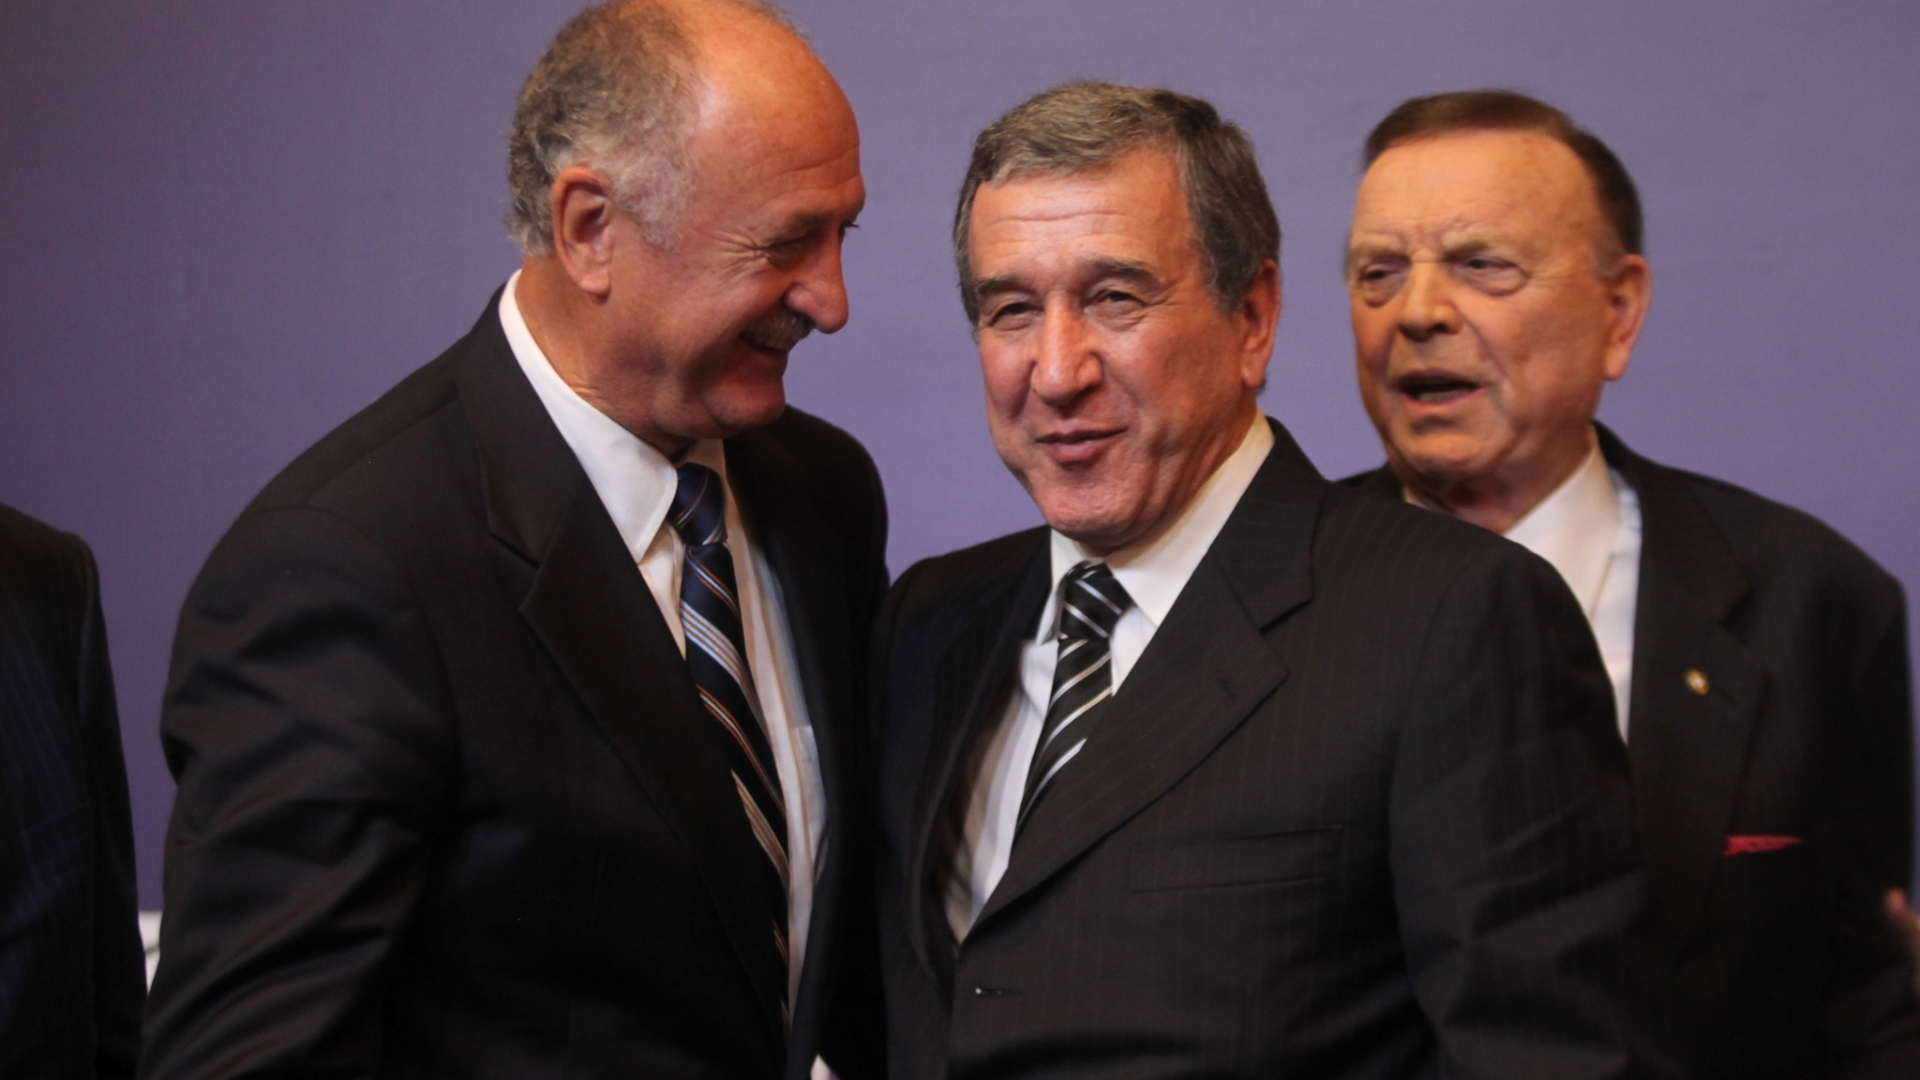 29.nov.2012 - Luiz Felipe Scolari, Carlos Alberto Parreira e Jos Maria Marin so vistos em momento descontrado durante coletiva da CBF no Rio de Janeiro